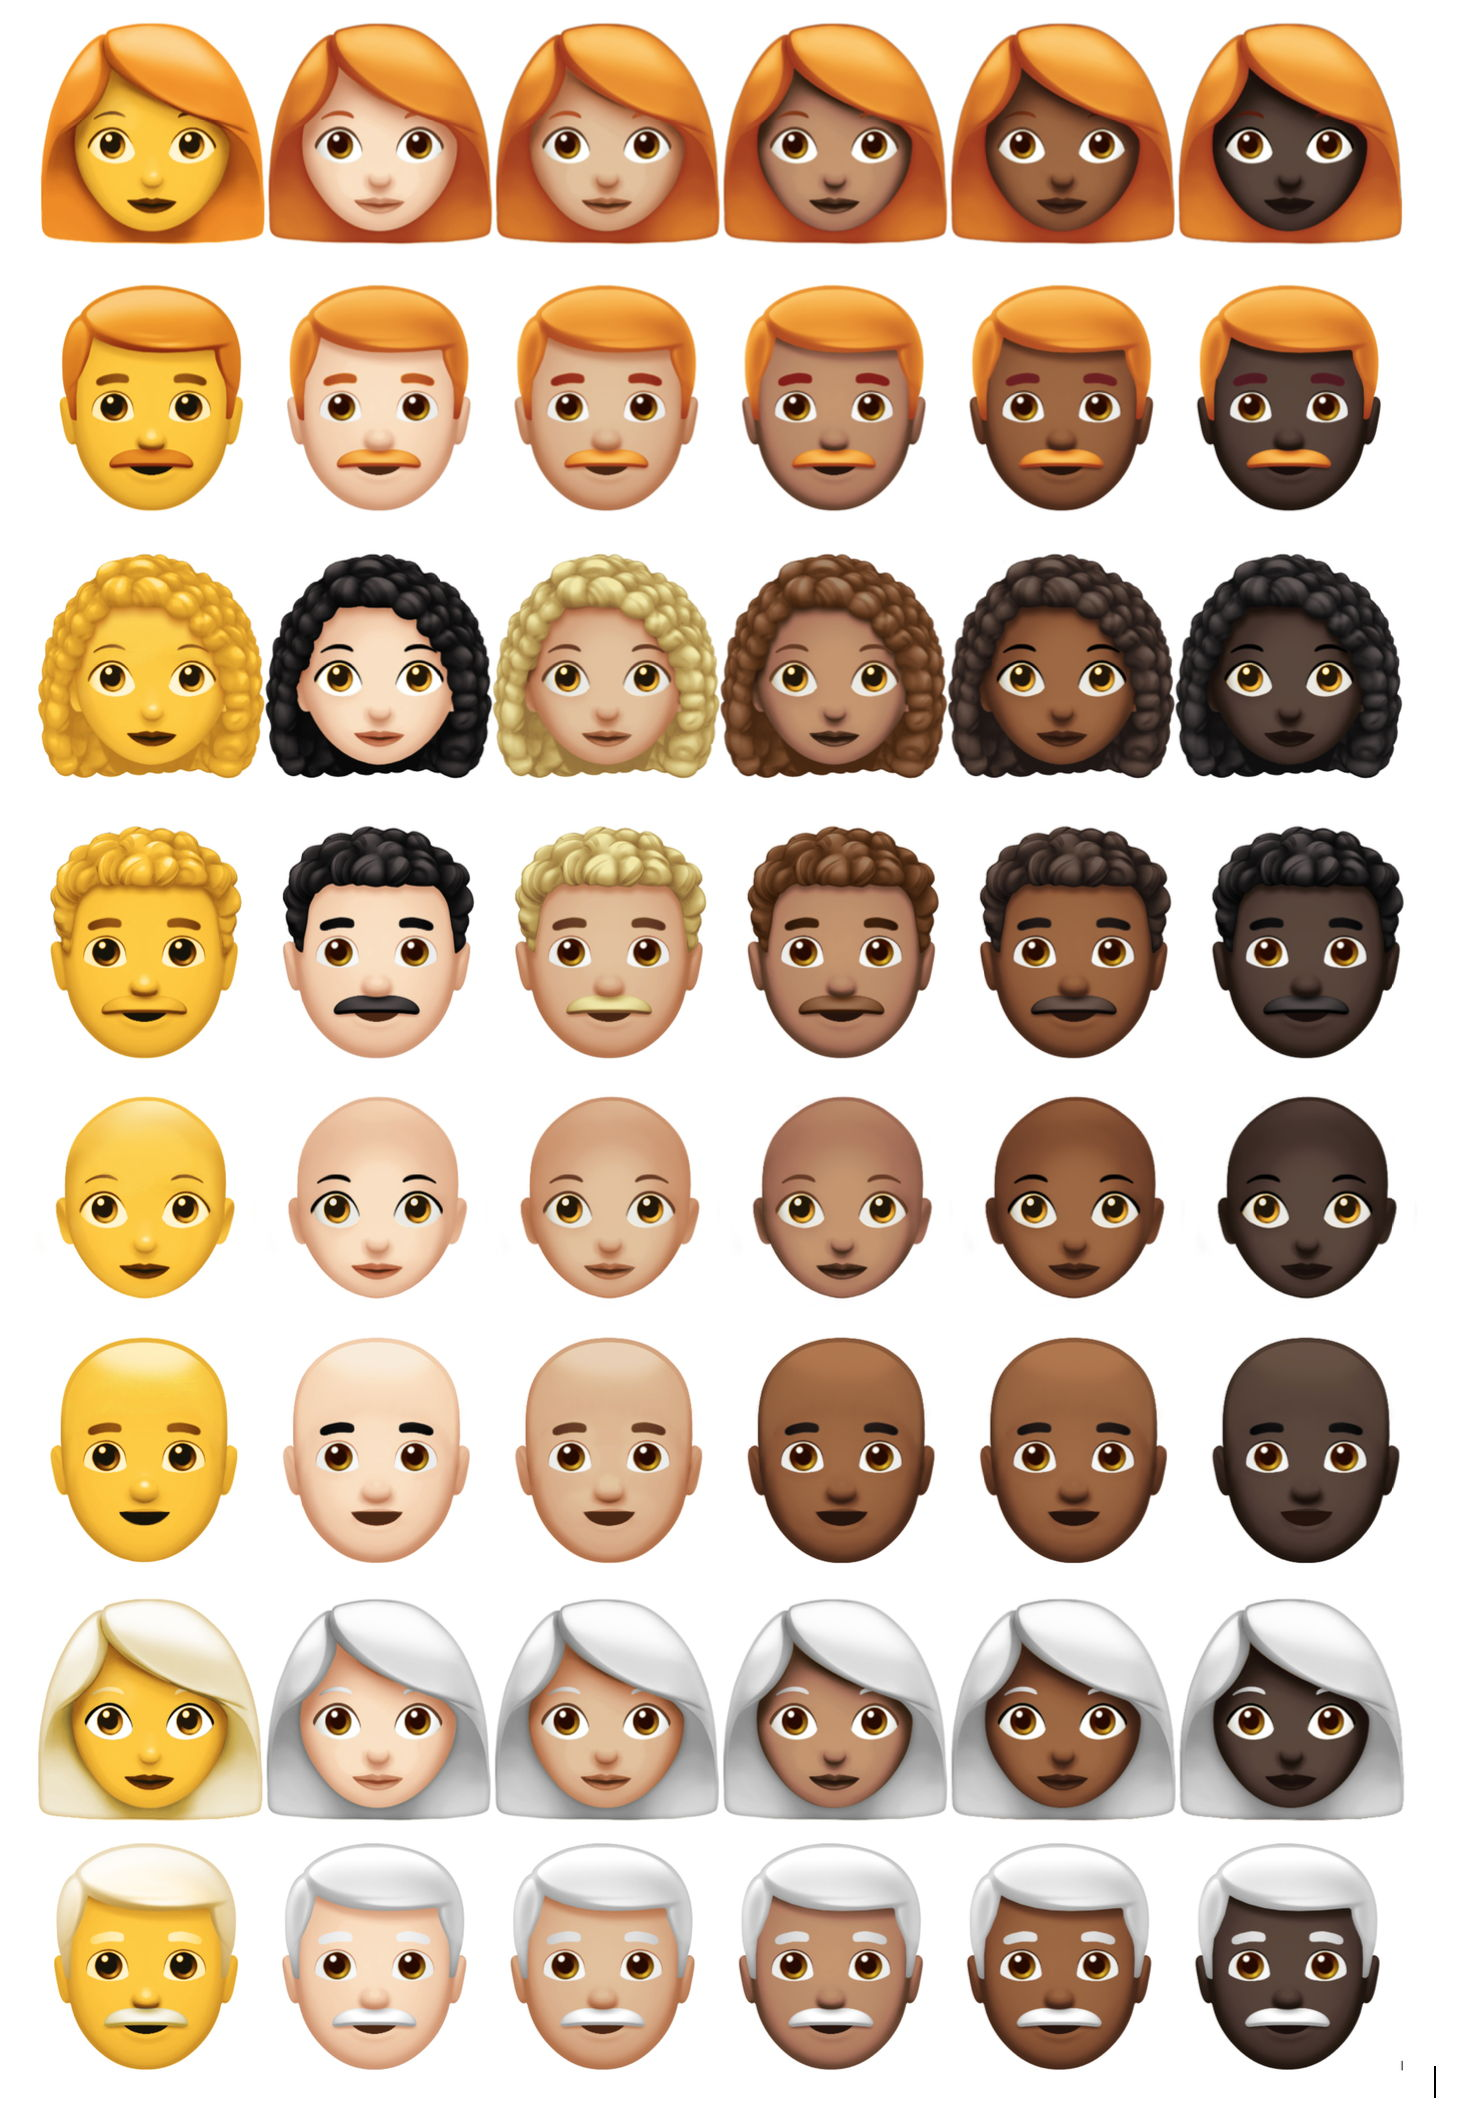 Apple previews new emoji coming in iOS 12 - iPhone J D